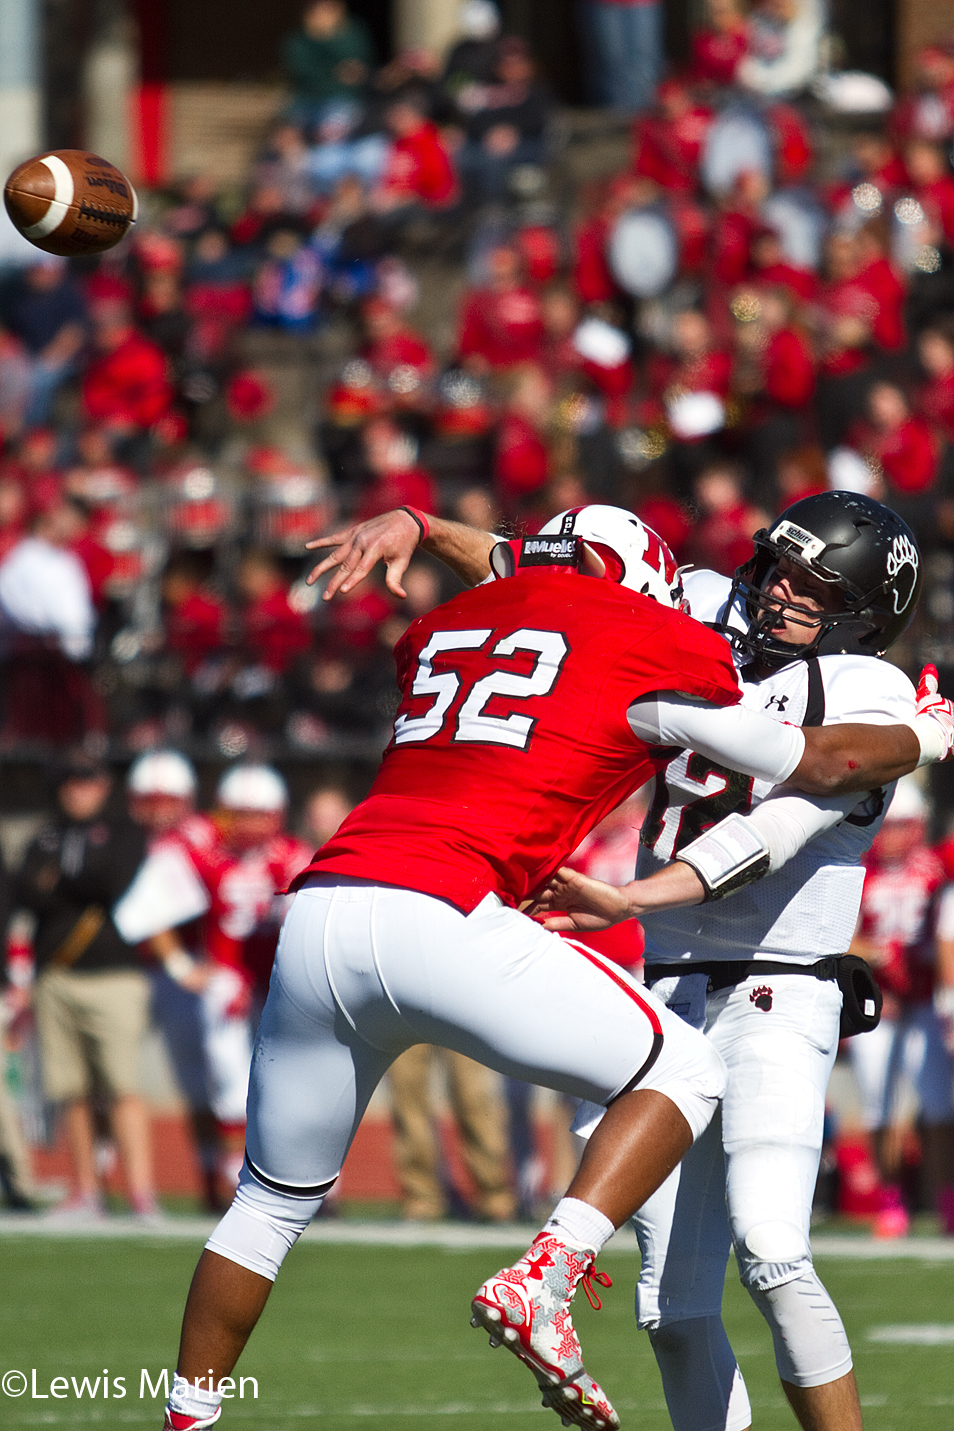 Lake Forest College quarterback Sean Dickson just gets off a pass as Monmouth College linebacker Michael Smith goes for a tackle on Oct. 17 at April Zorn Stadium in Monmouth, Ill. The Fighting Scots beat the Foresters 38-7.